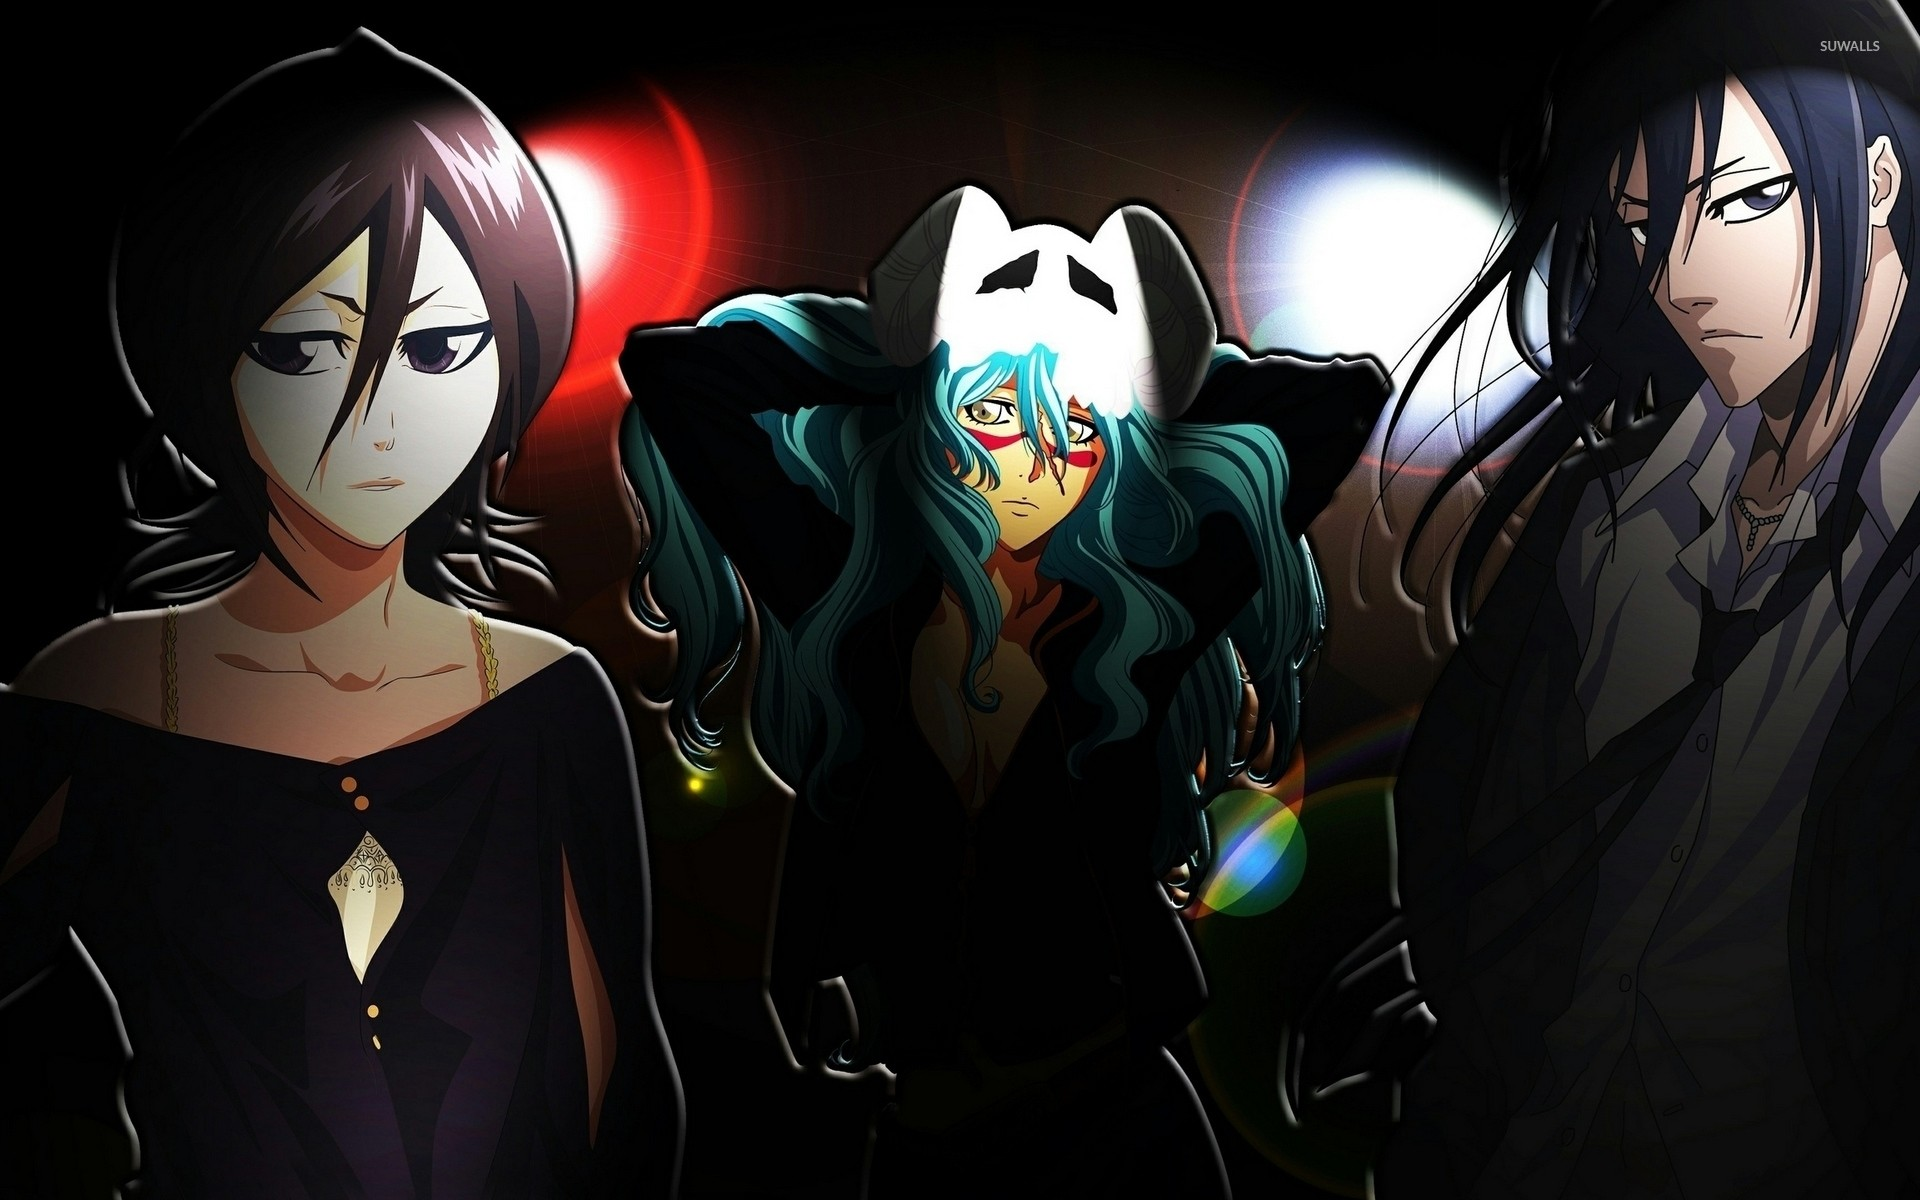 1920x1200 Rukia, Nelliel and Byakuya - Bleach wallpaper  jpg